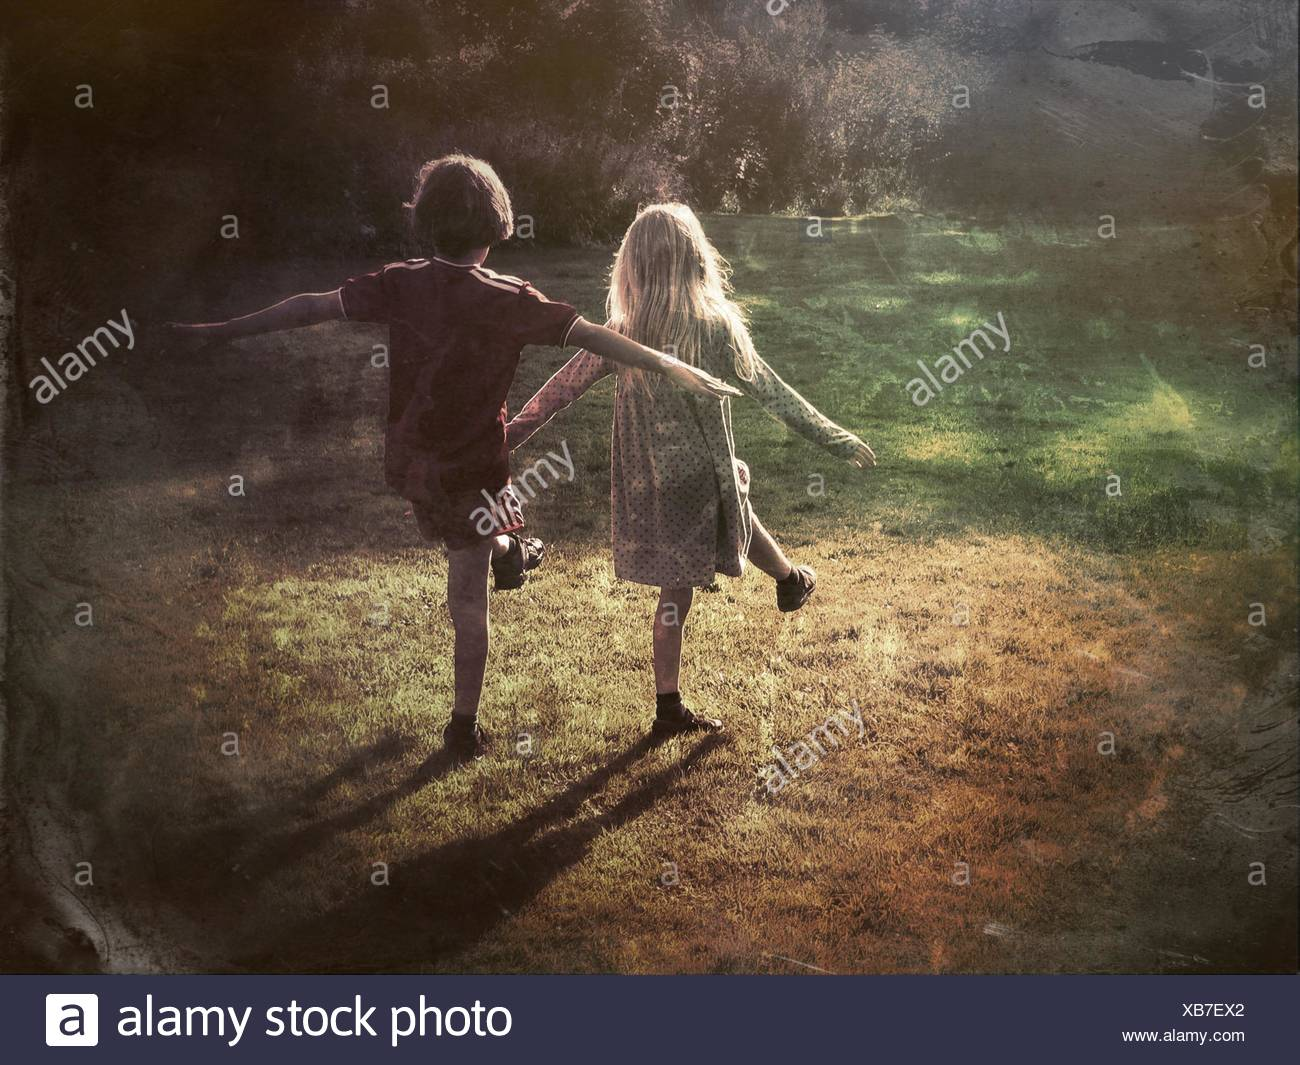 Rear View Of Siblings Playing On Ground - Stock Image